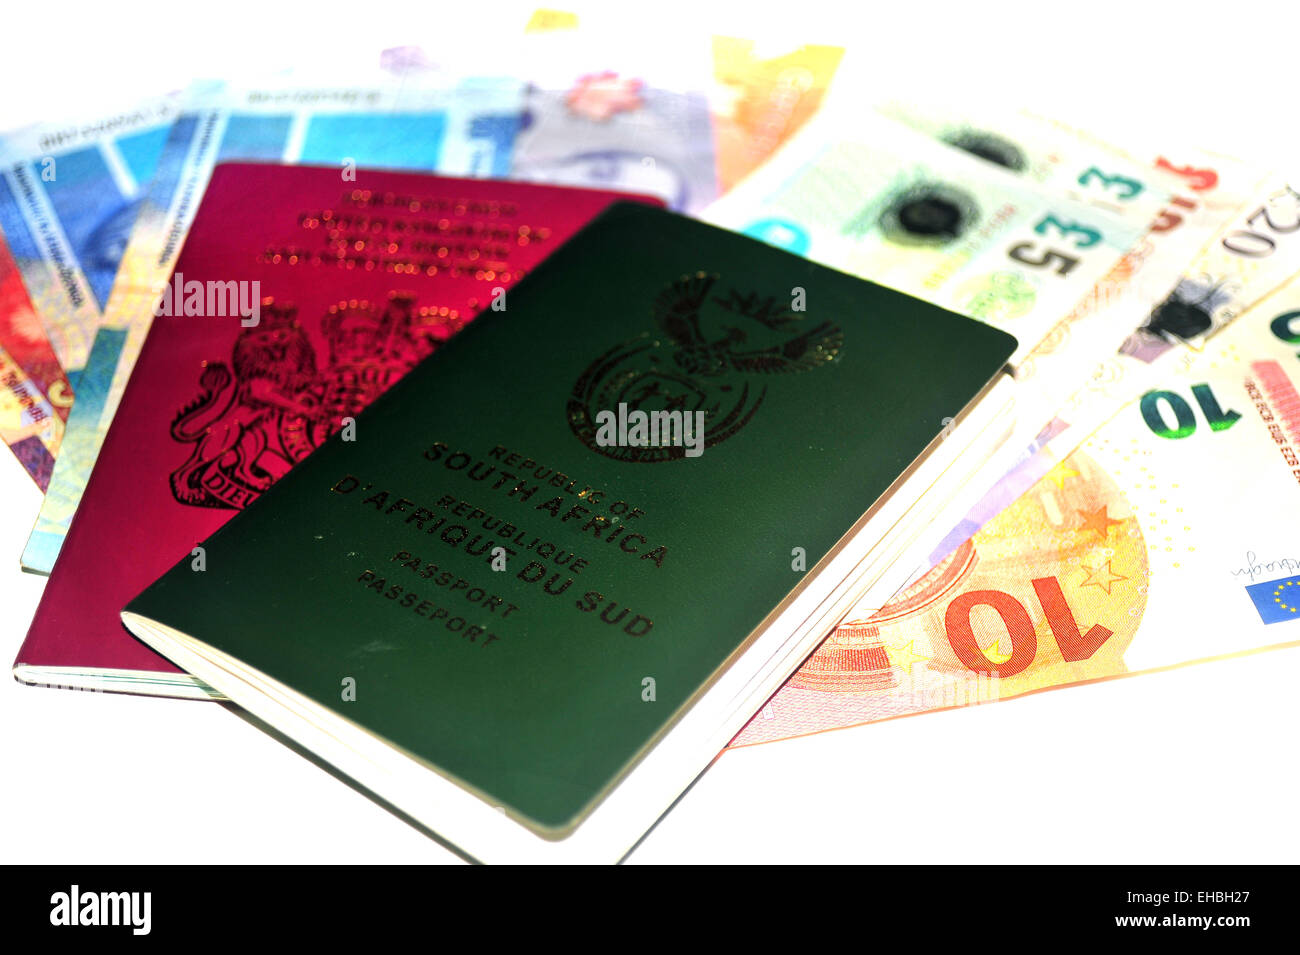 British and South African passports full of money photographed in a studio against a white background. Stock Photo